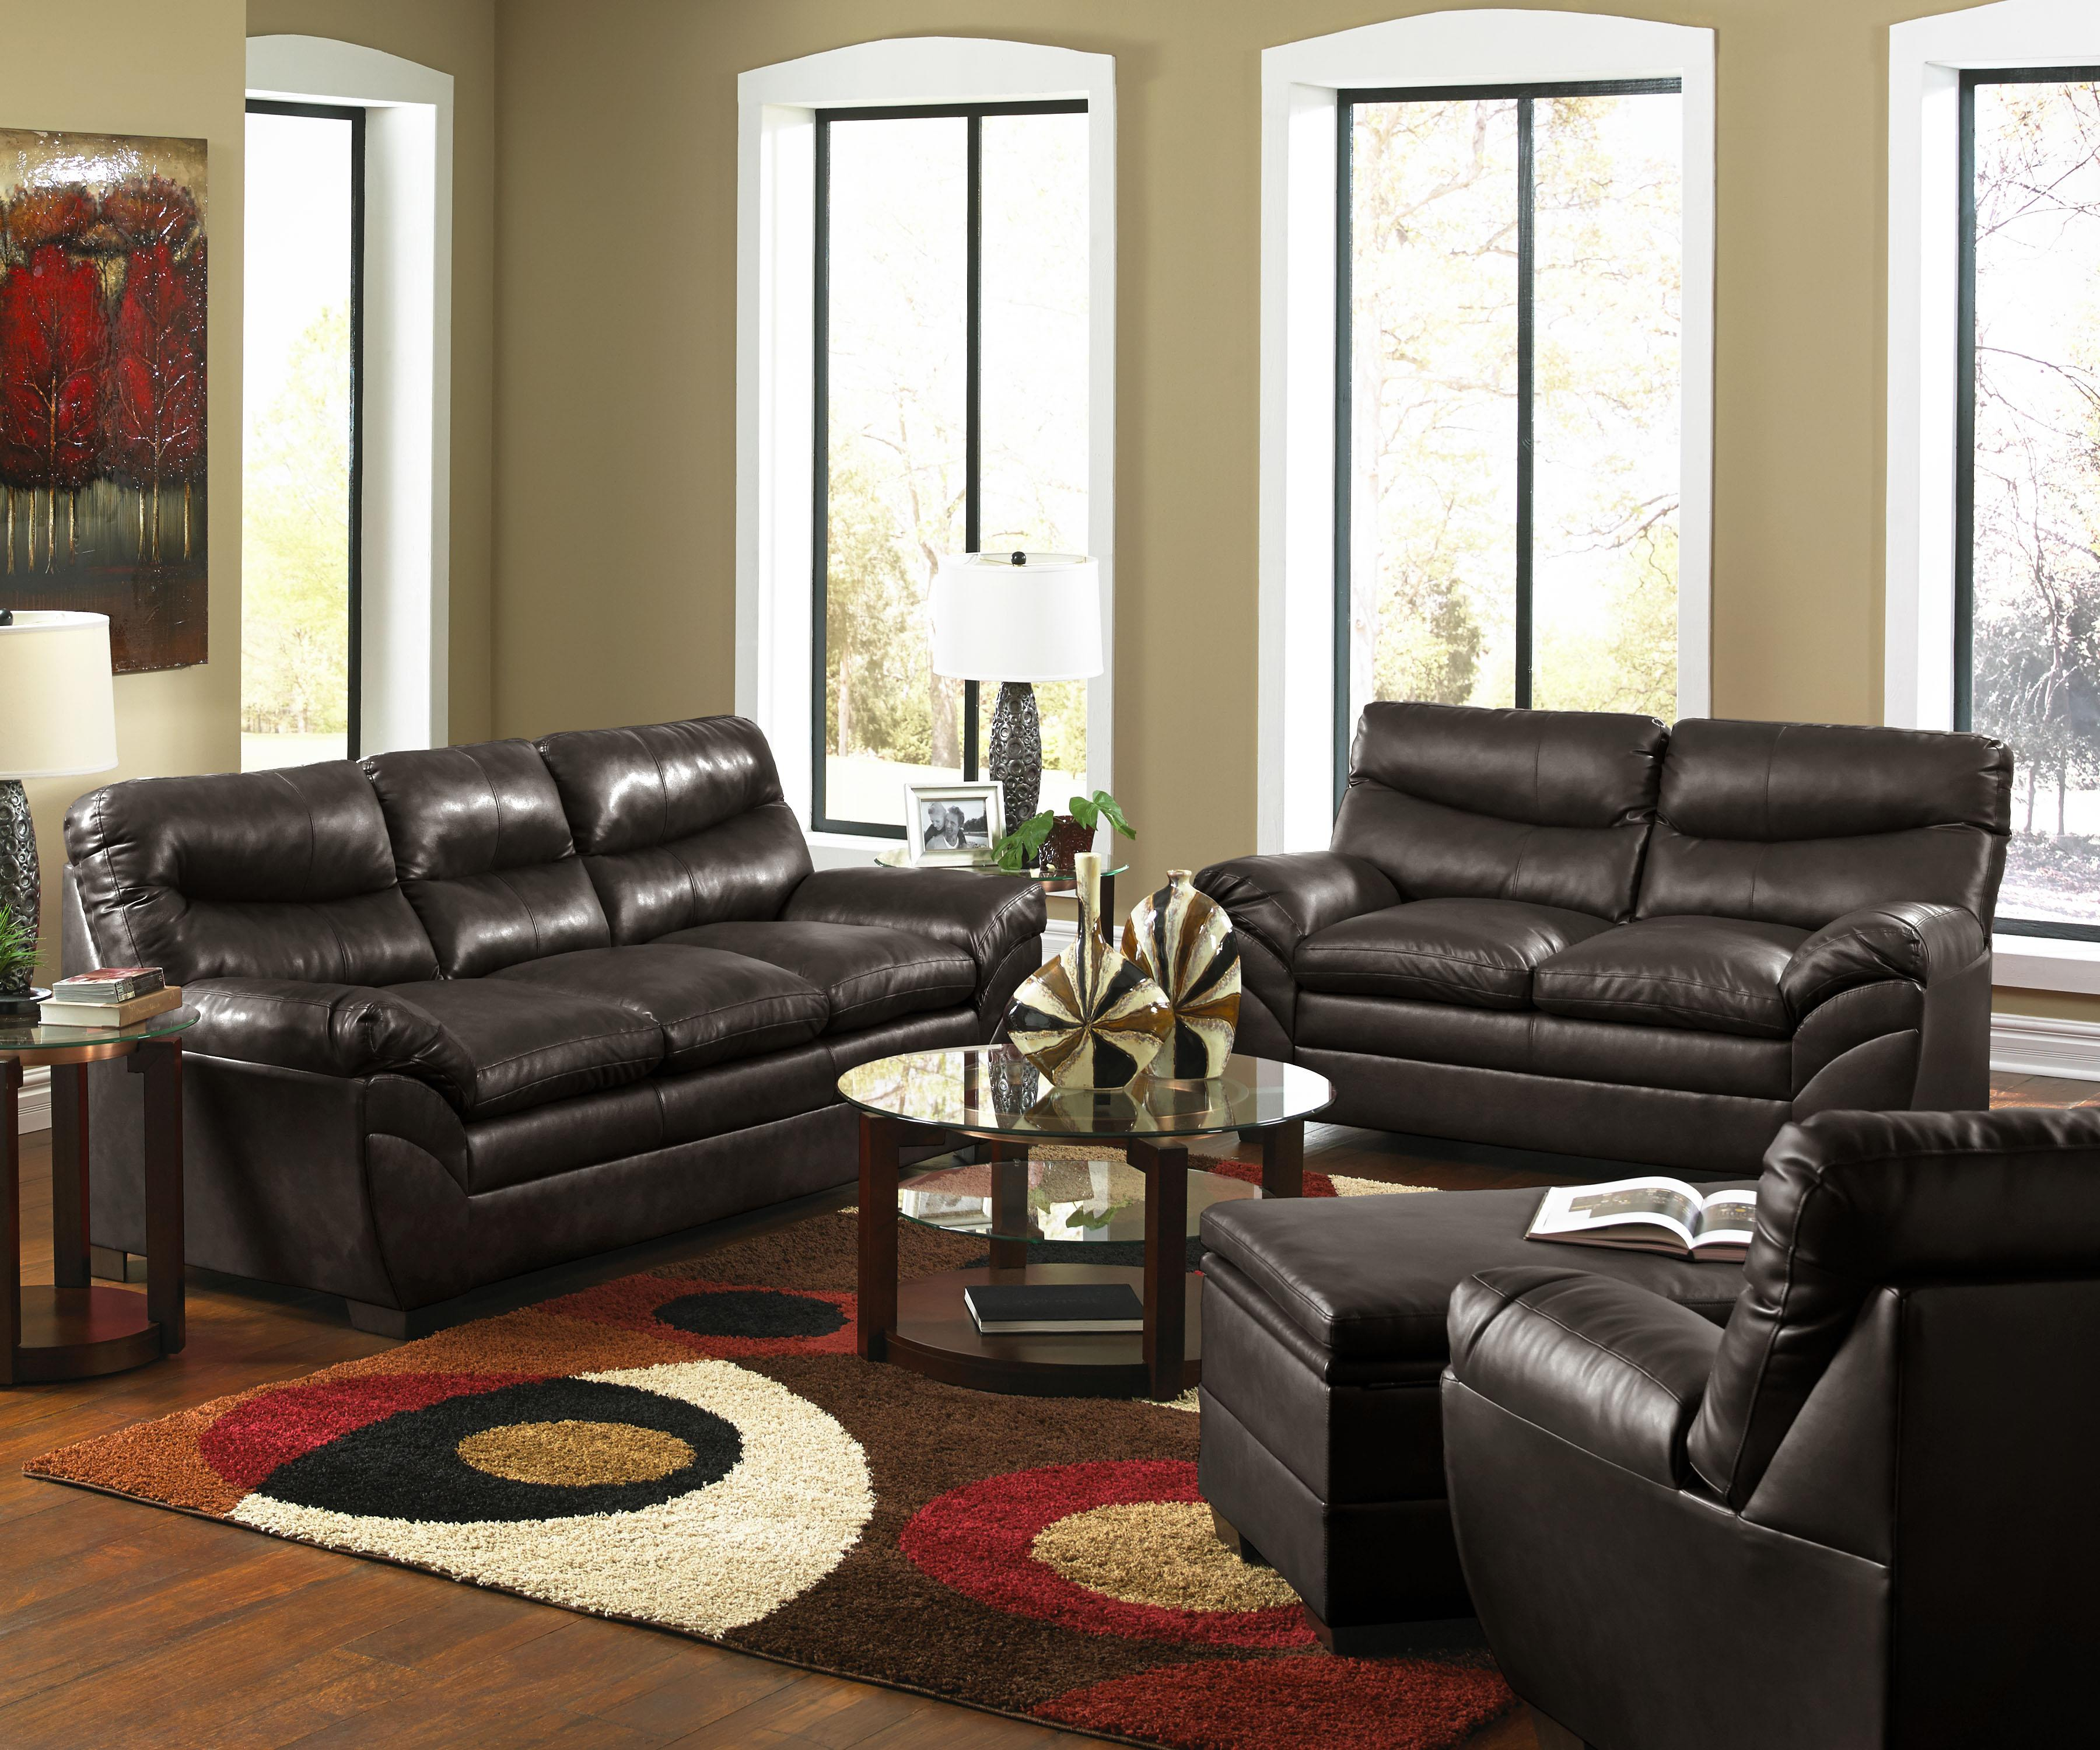 Simmons Upholstery 9515 Stationary Living Room Group - Item Number: 9515 Espresso Living Room Group 1